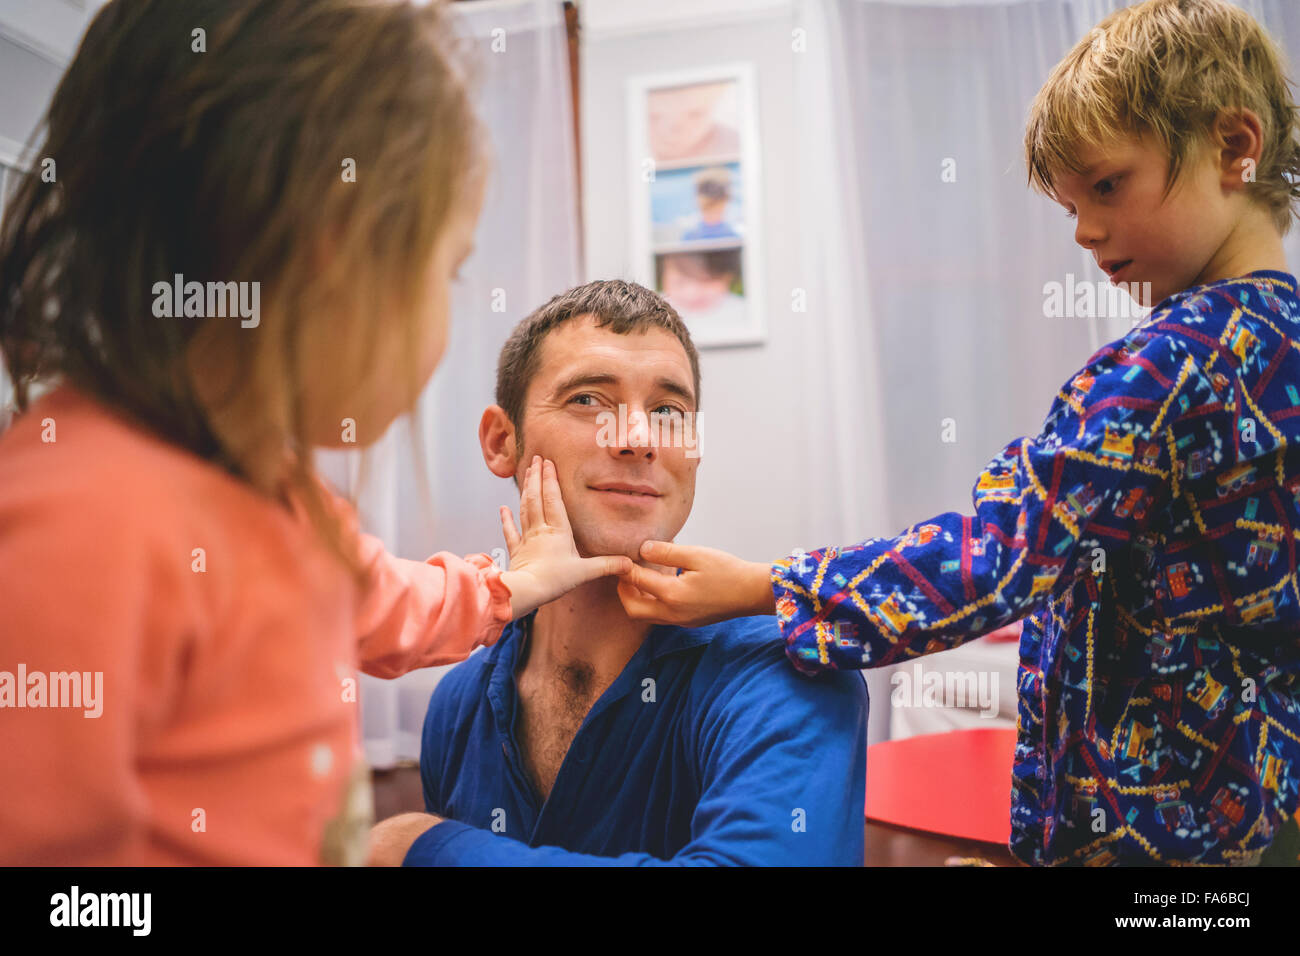 Boy and girl touching man's shaved face - Stock Image